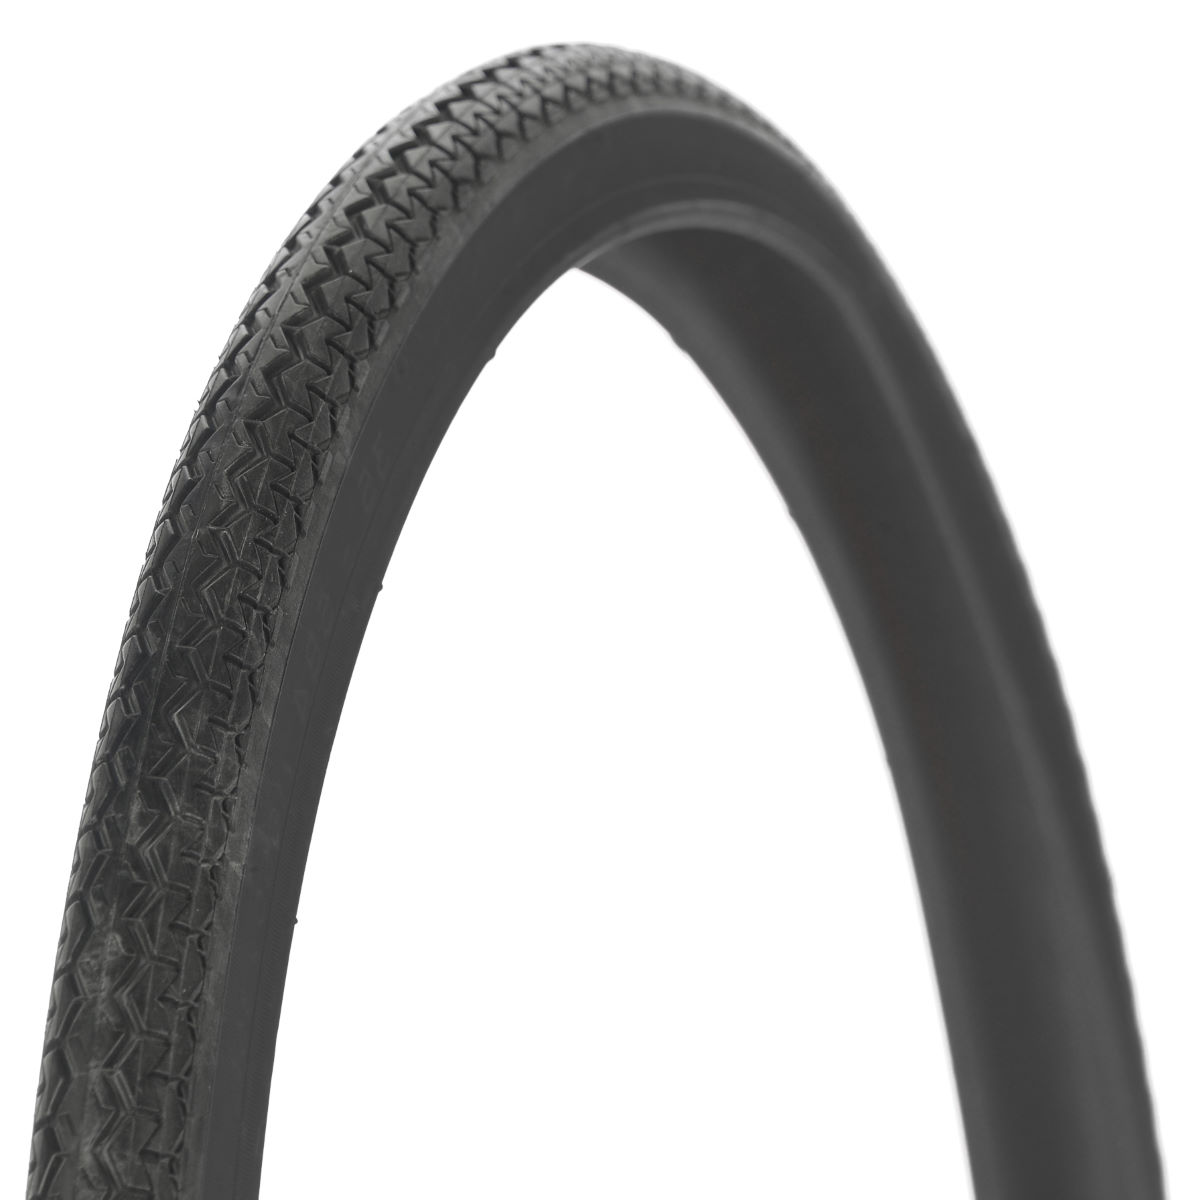 Pneu Michelin World Tour Bike - 650b x 35a Wire Bead Noir Pneus